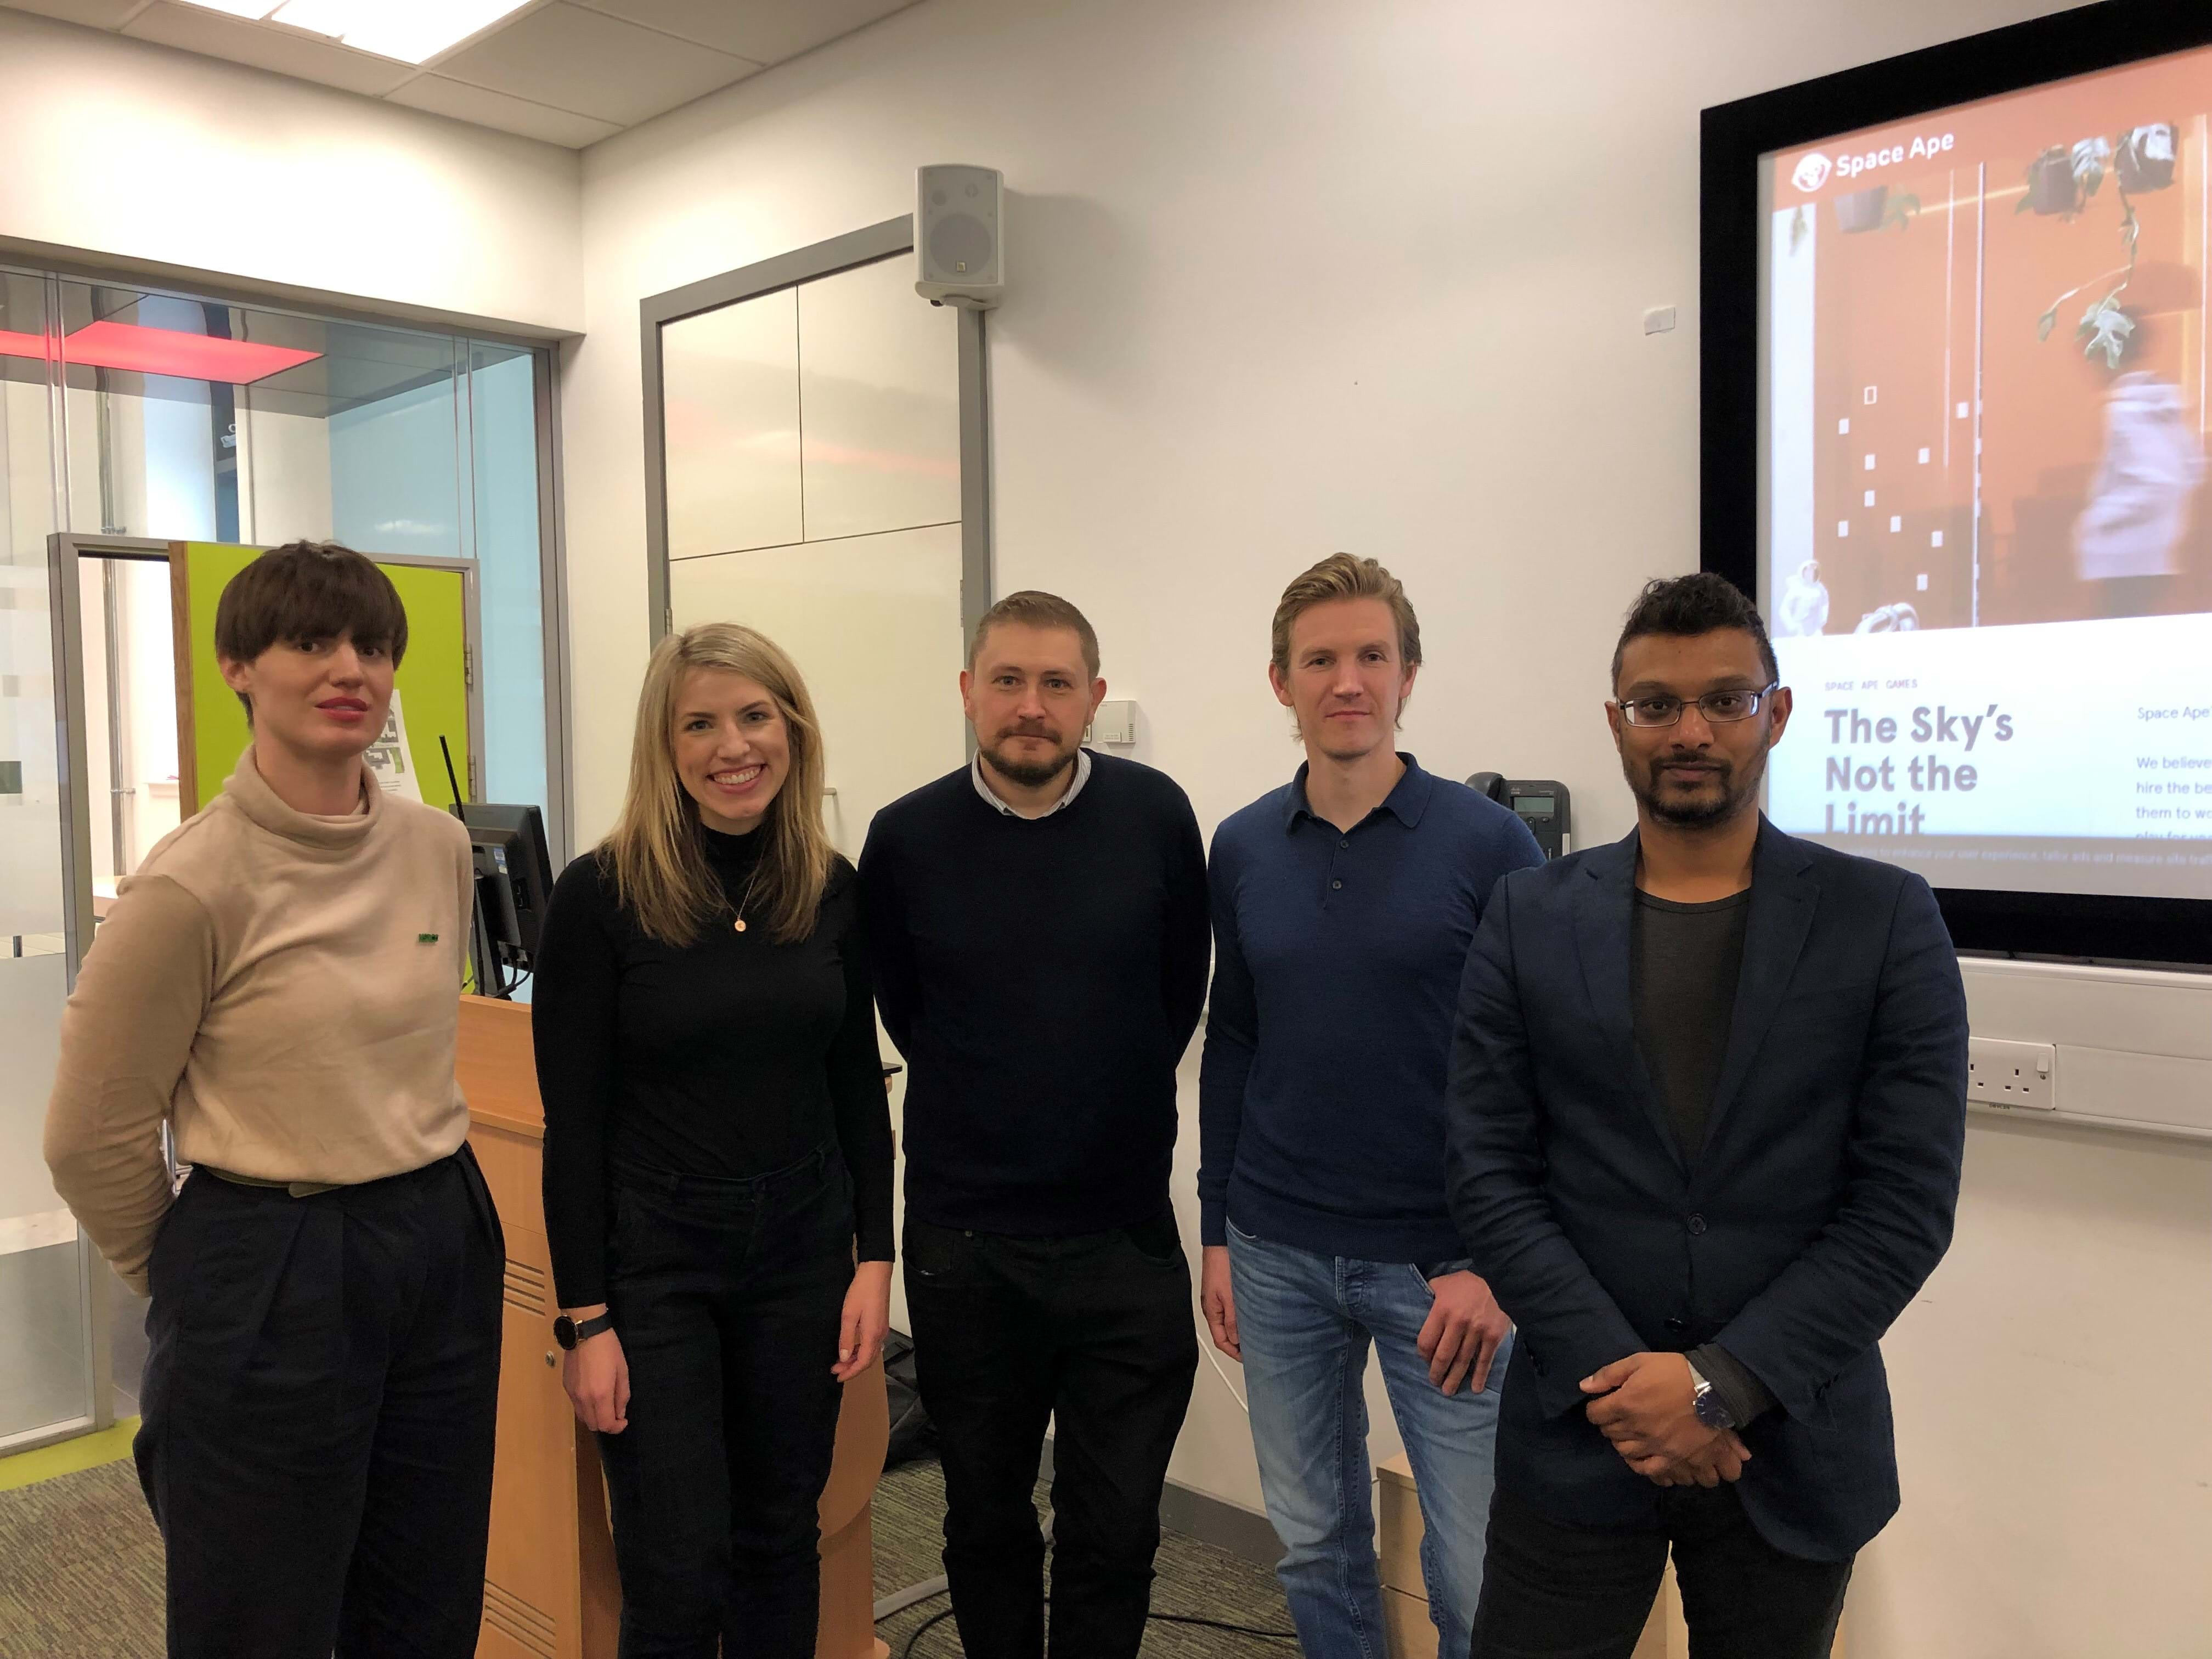 Left to right: Laura Clarke, Policy Officer NSPCC; Karen Hutchison, Senior Officer CEOP Partnership Delivery (NCA); Andy Burrows, Head of Child Safety Online Policy, NSPCC; Max Bauer, Head of Customer Service, Space Ape Games; Darshana Jayemanne, Lecturer in Games and Arts, Abertay University